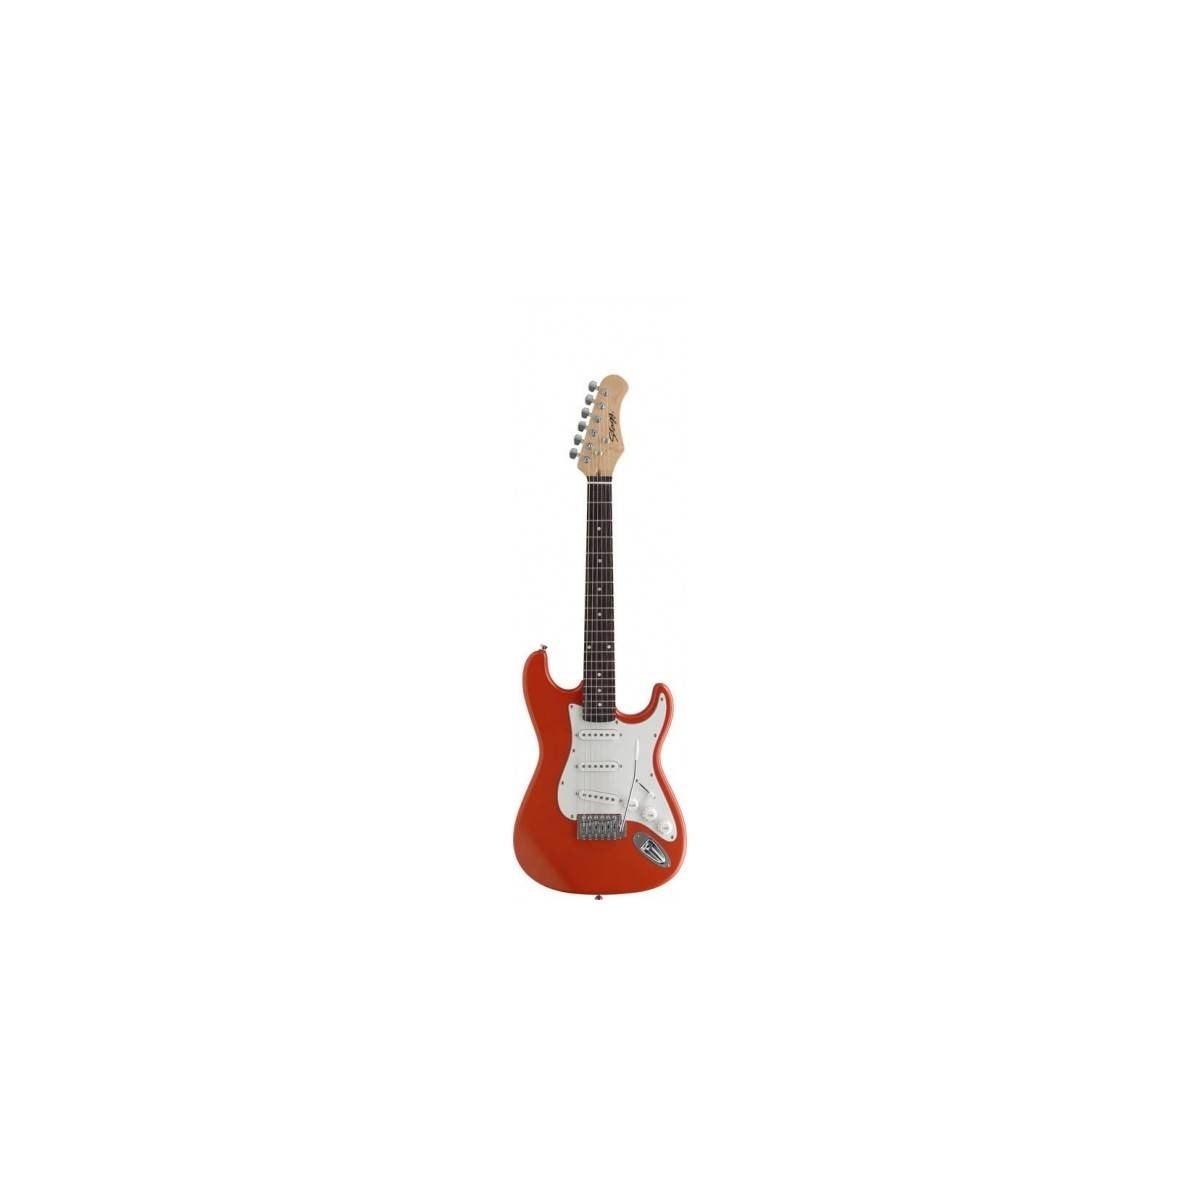 Guitare Electrique 3/4 S300 Orange